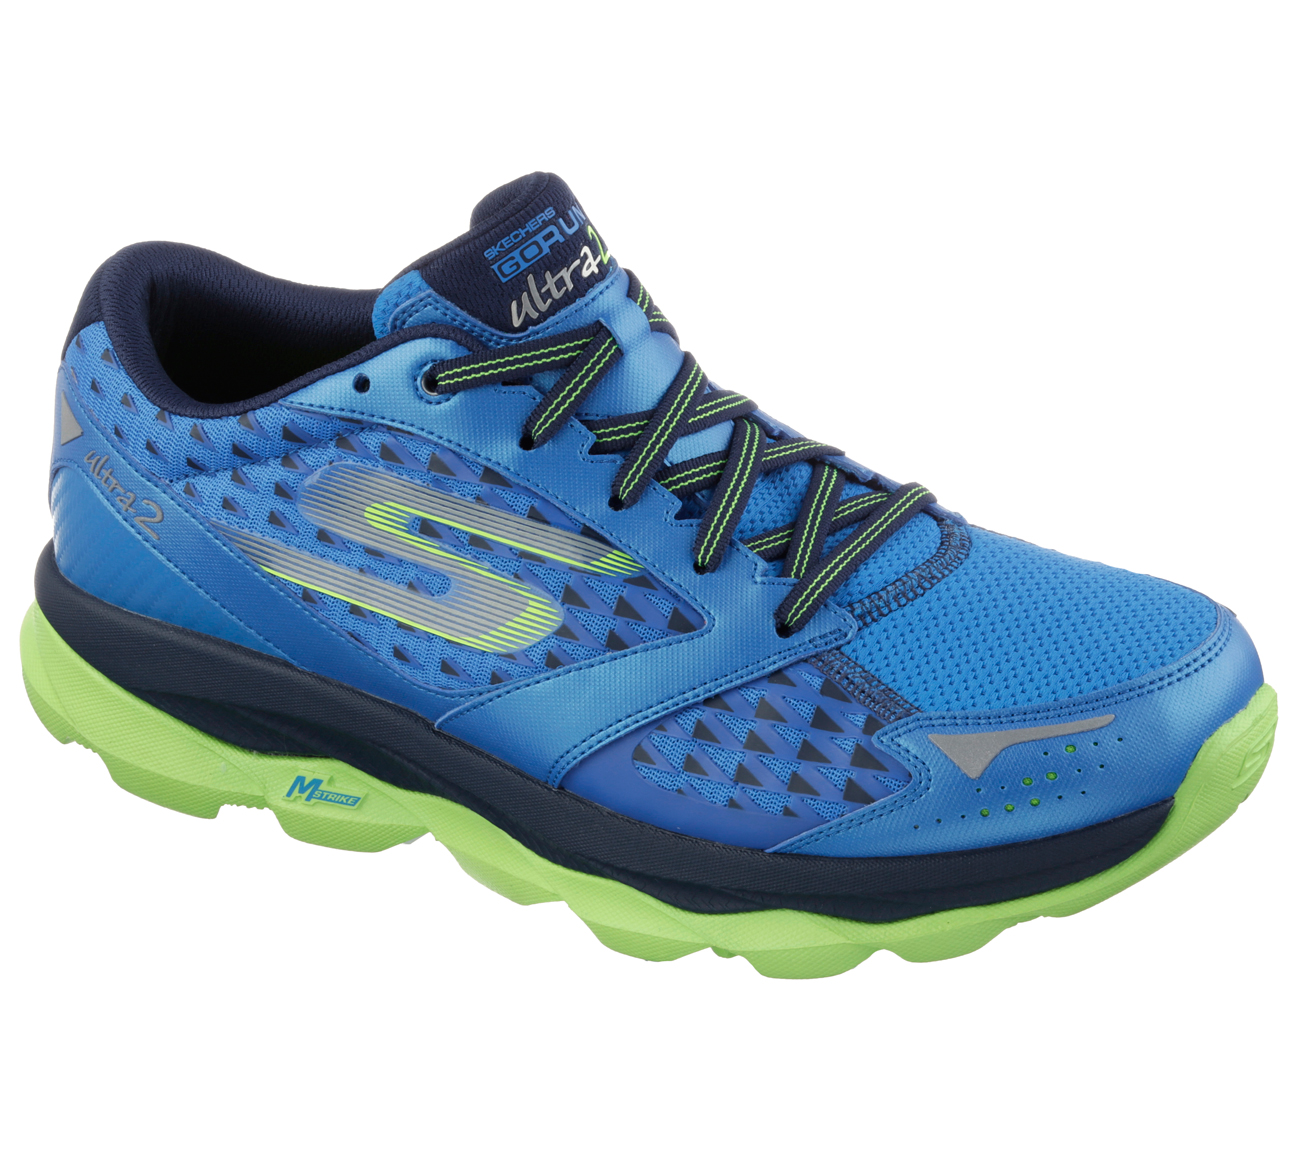 Buy SKECHERS Skechers GOrun Ultra 2GOrun Shoes Only $85.00